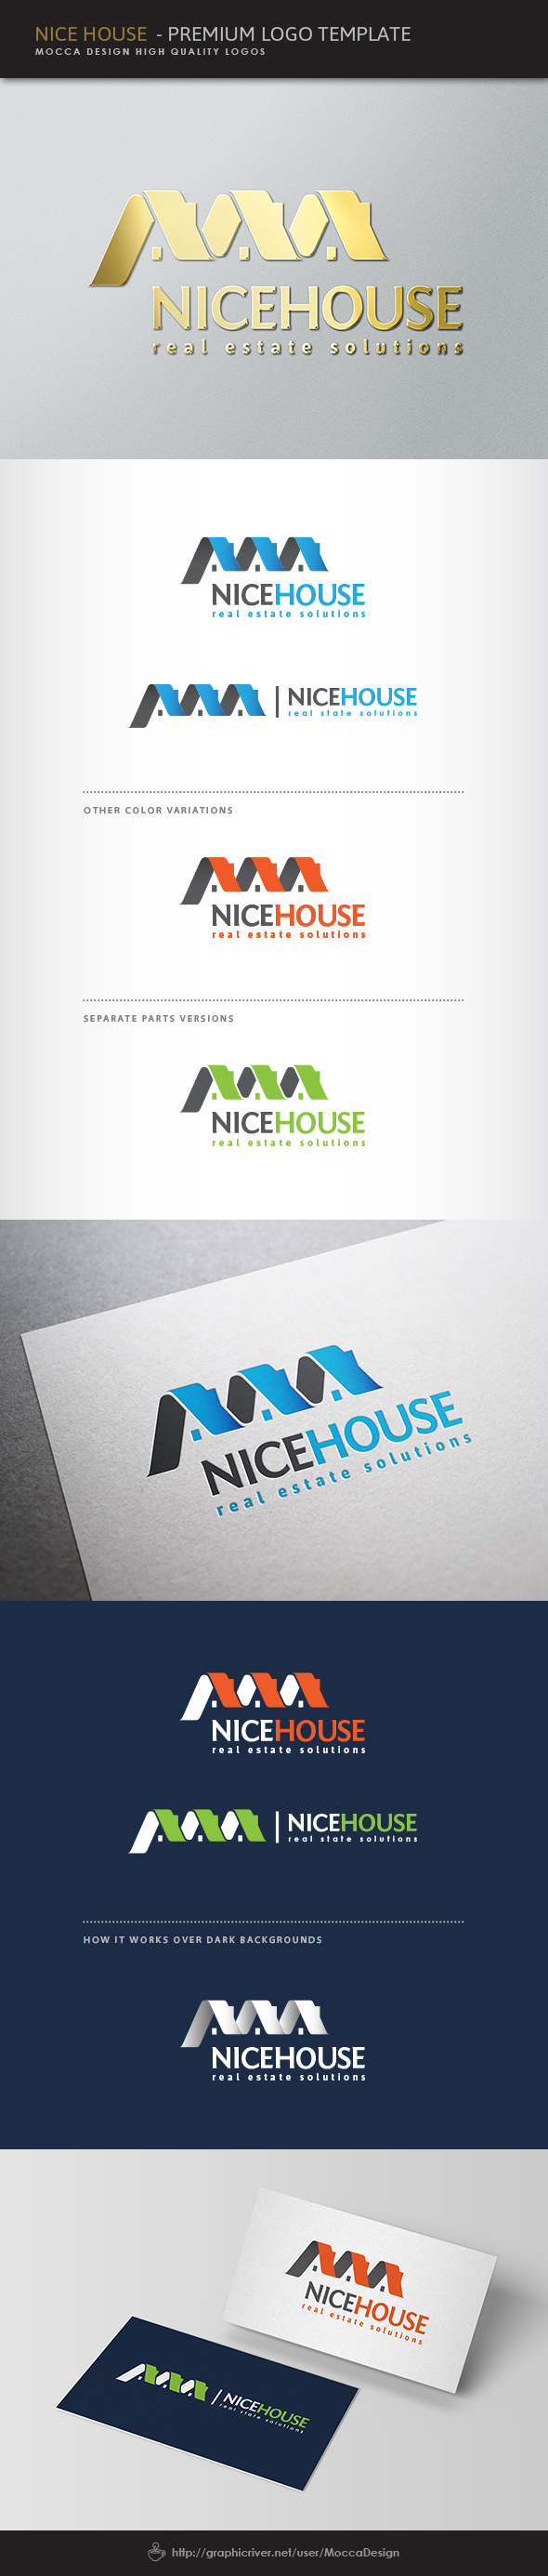 NiceHouse Logo by moccadsgn